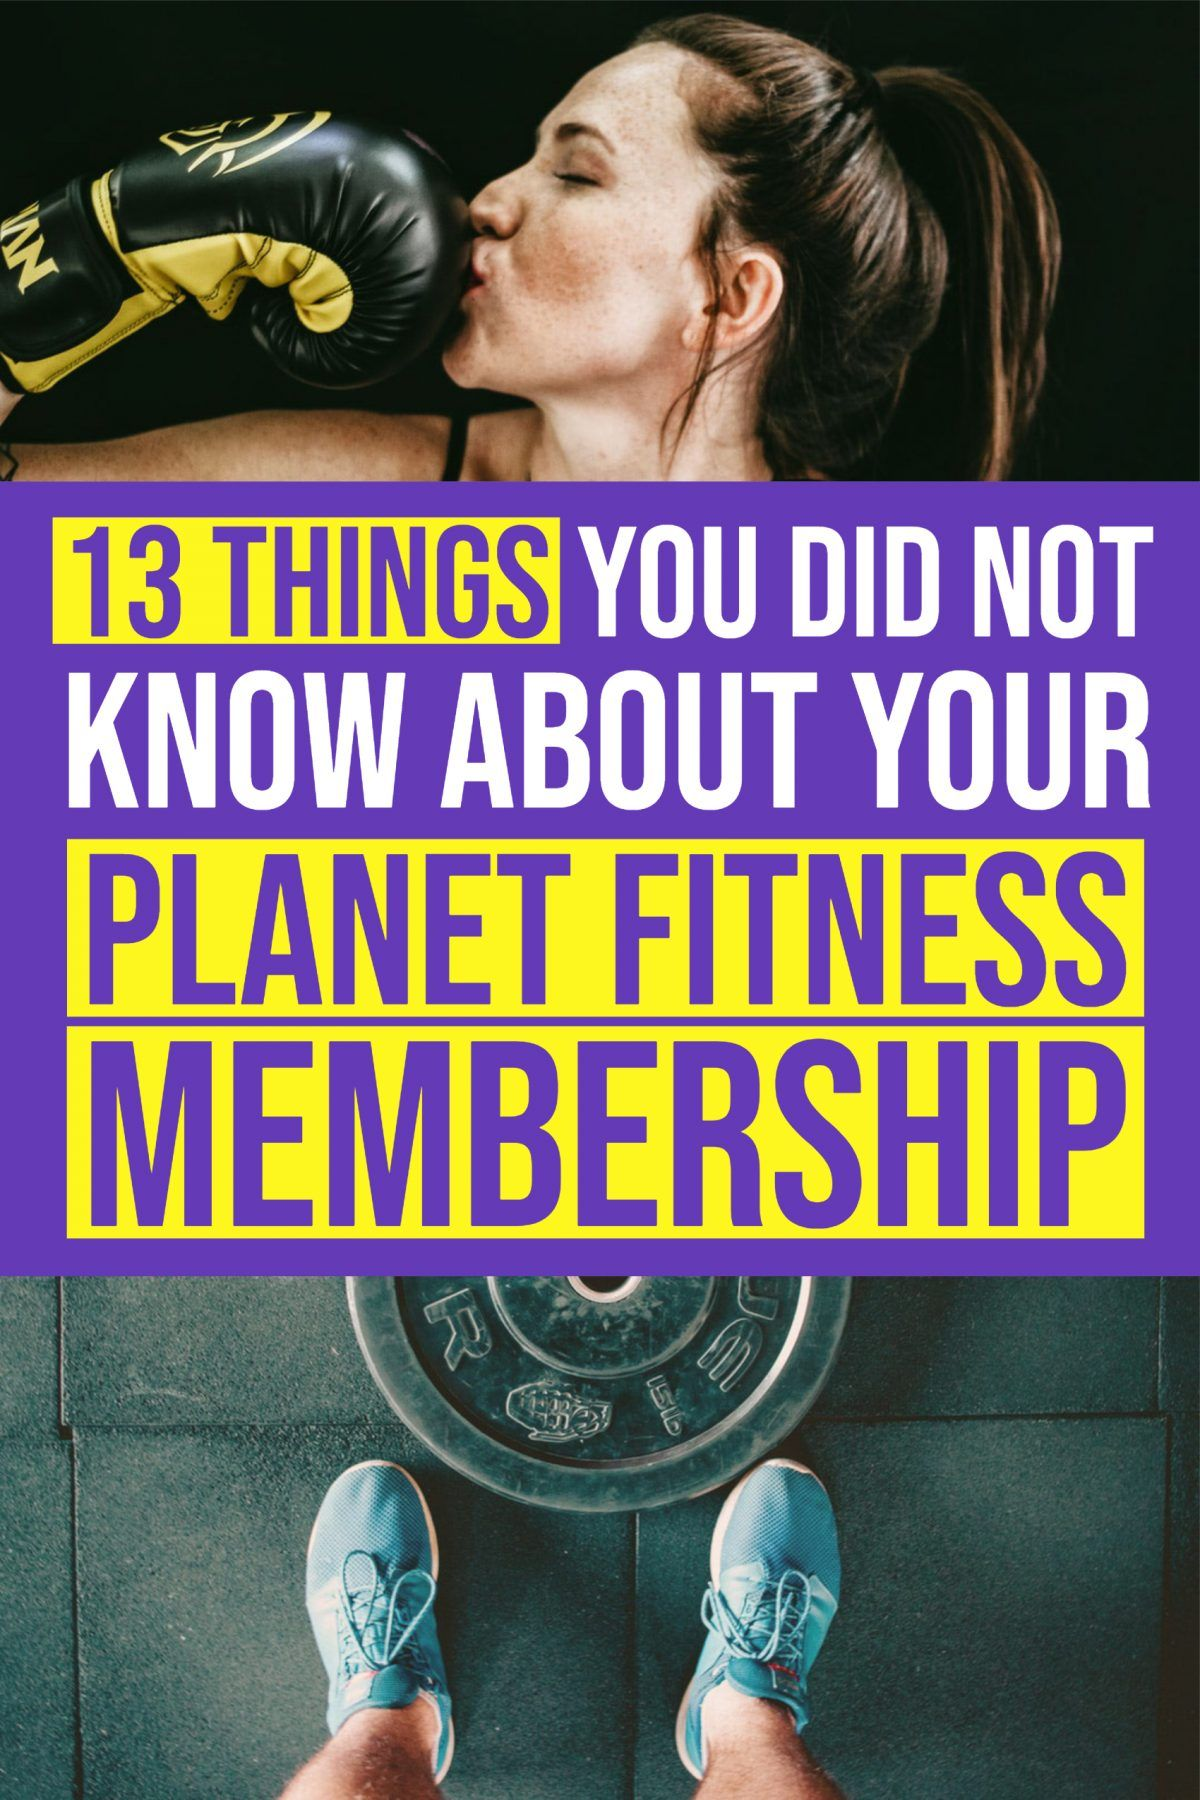 13 Ways To Get The Most Out Of Your Planet Fitness Membership